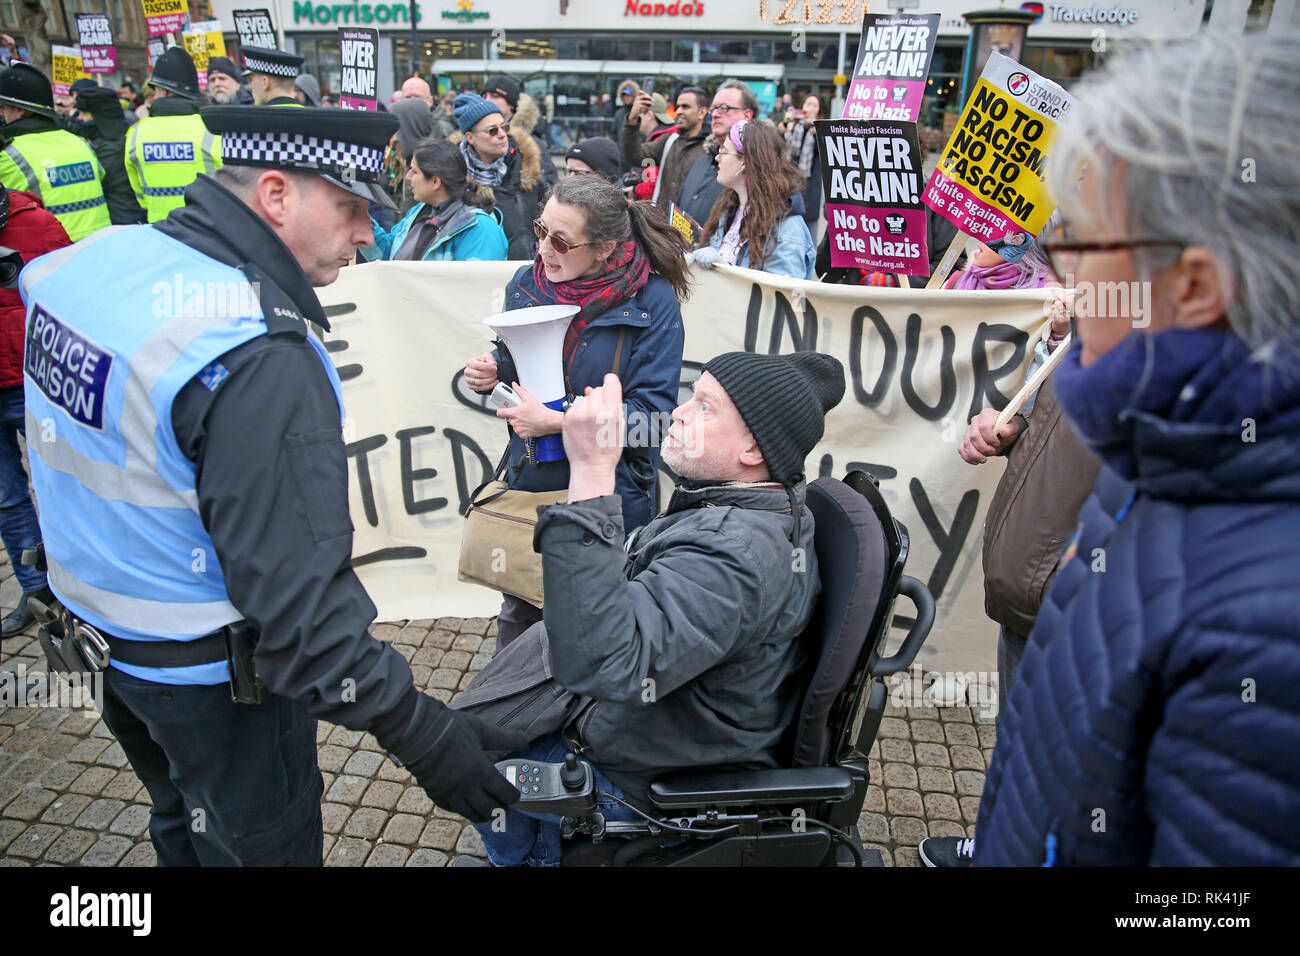 Manchester, UK. 09th February, 2019. A community Police officer speaking to an anti racist during a Stand up to racism rally. Piccadilly Gardens, Manchester, UK. 9th Feb, 2019. (C)Barbara Cook/Alamy Live News Credit: Barbara Cook/Alamy Live News - Stock Image